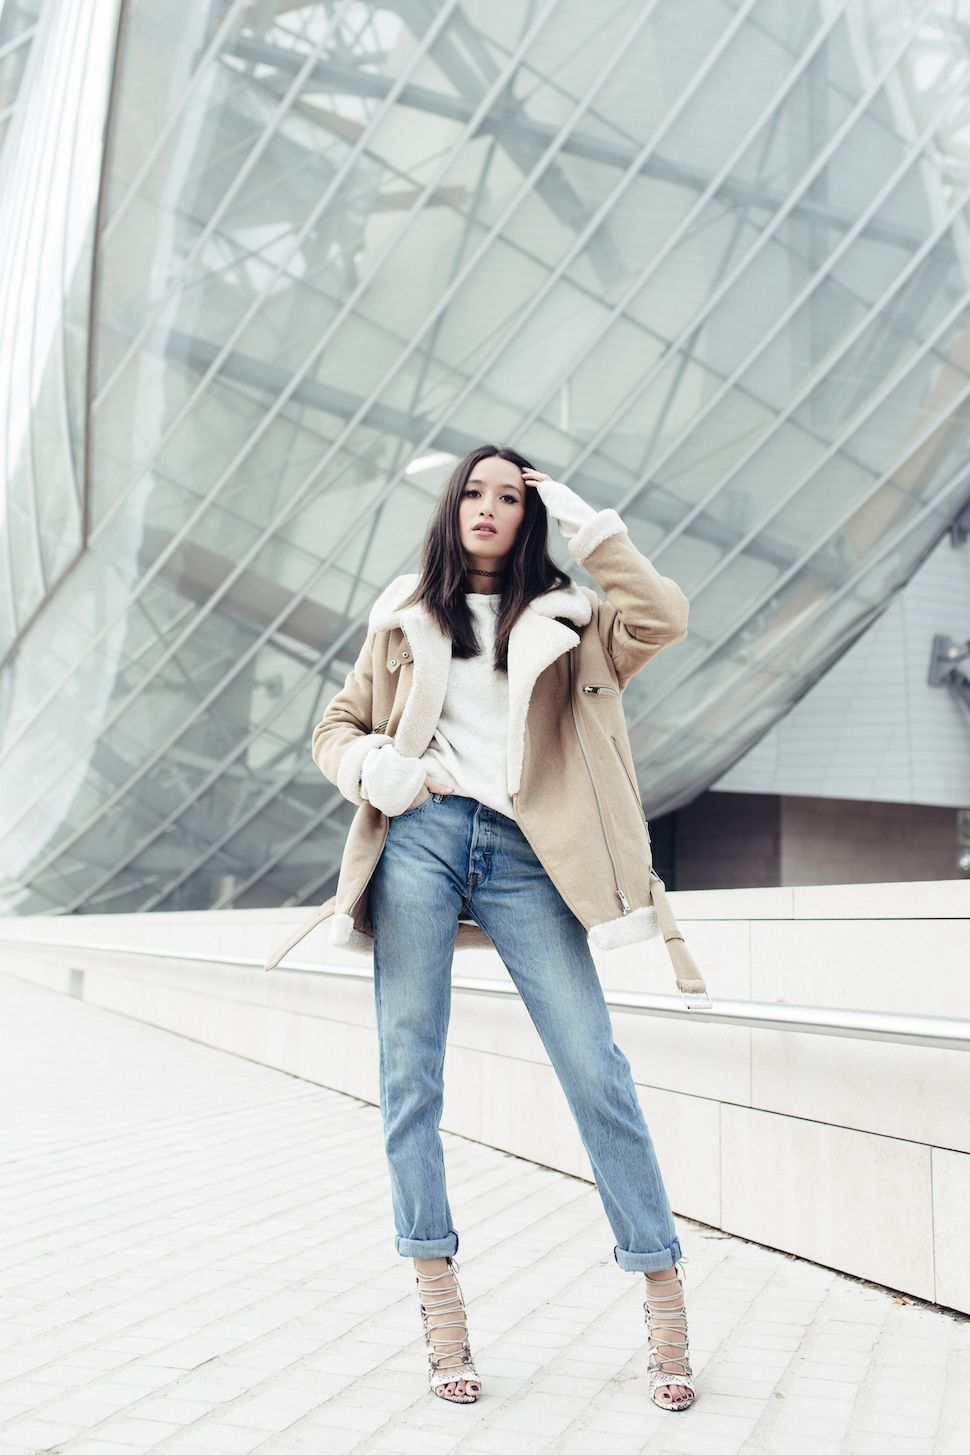 294dfc4ffb 57 Ways To Combine Your Jeans With Shearling Coat This Winter  Style  Women  Outfit  Women Outfit